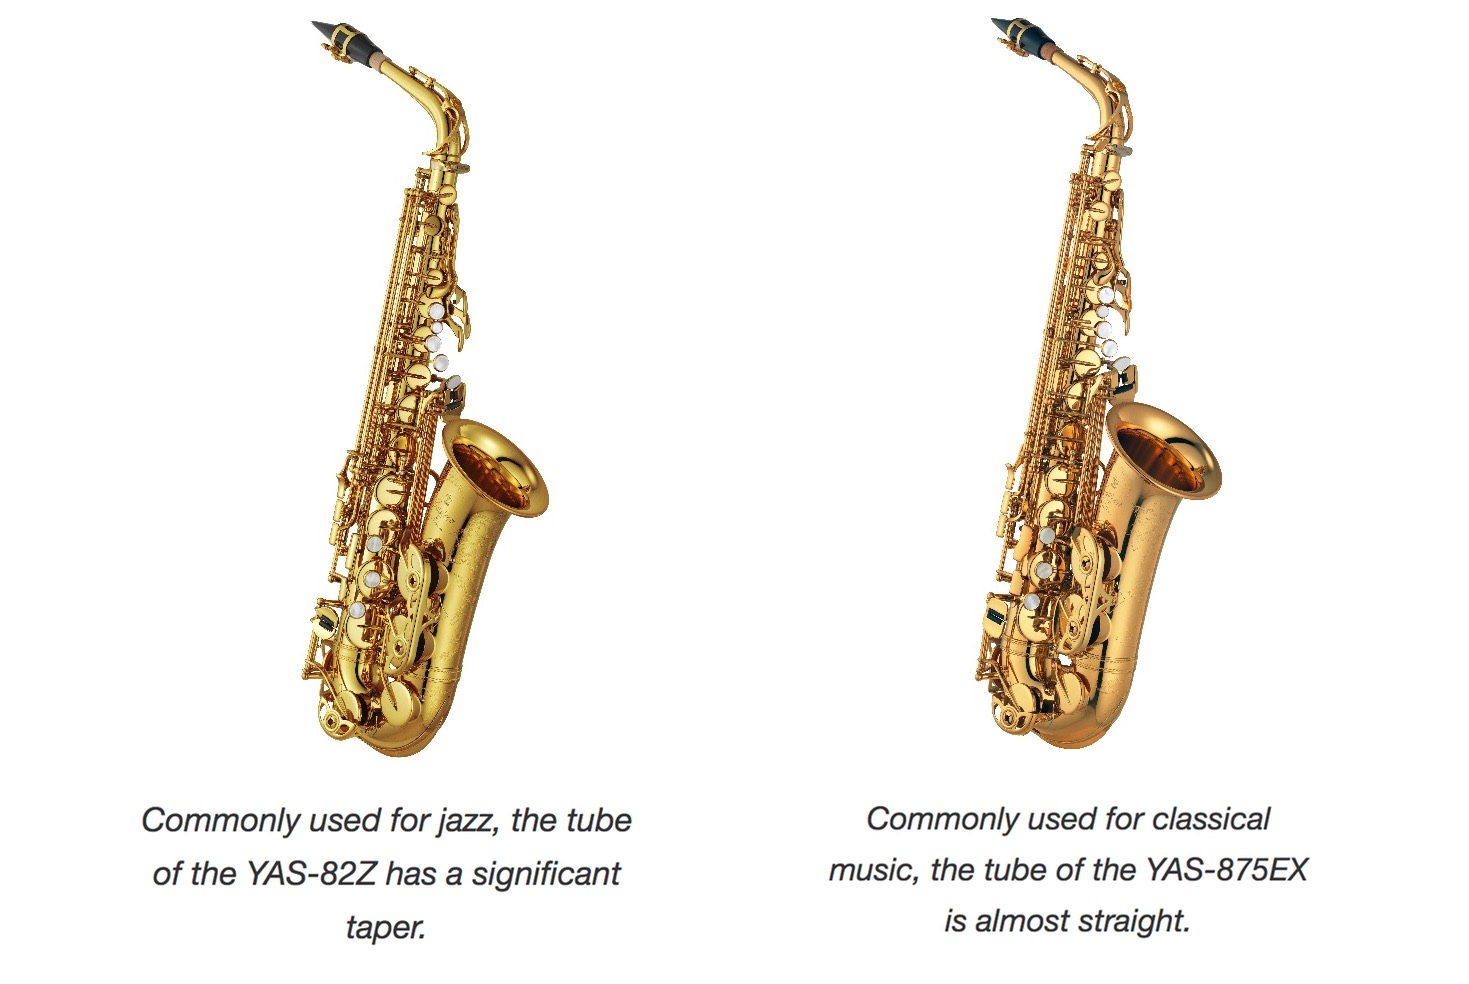 Two saxophones side by side.